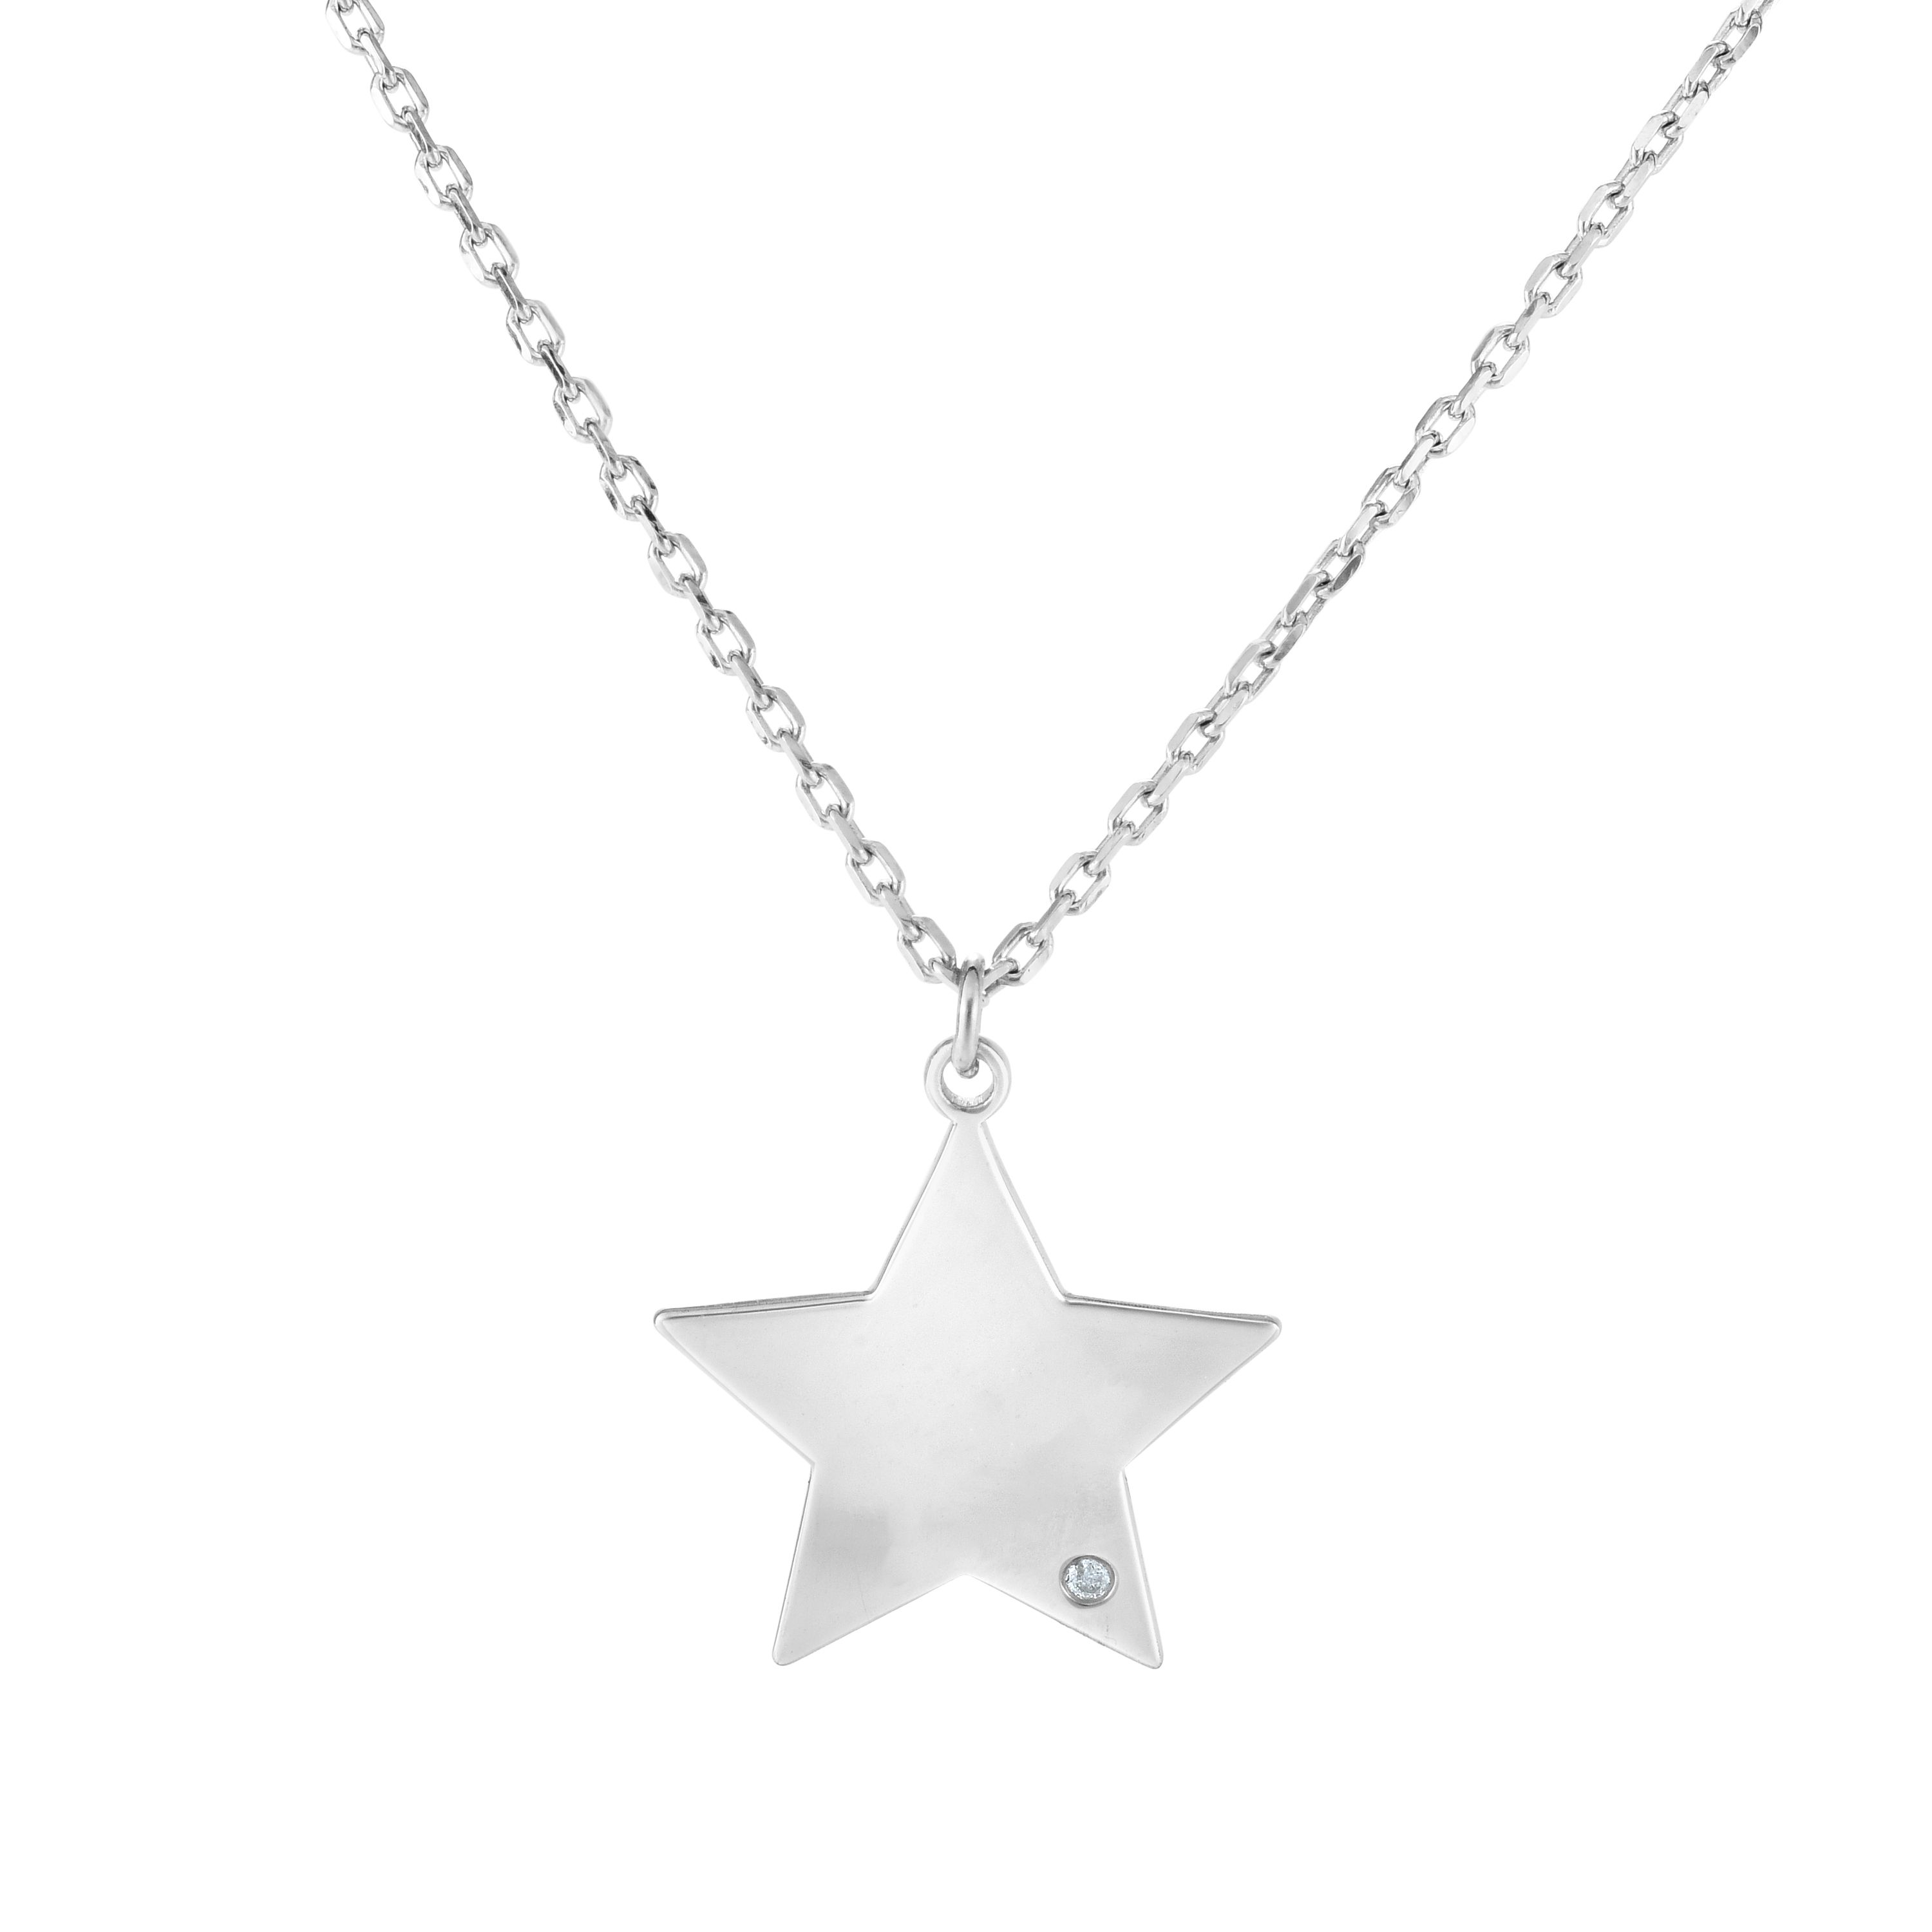 Sterling Silver With Rhodium Finish Necklace Wyatt's Jewelers Seattle, WA